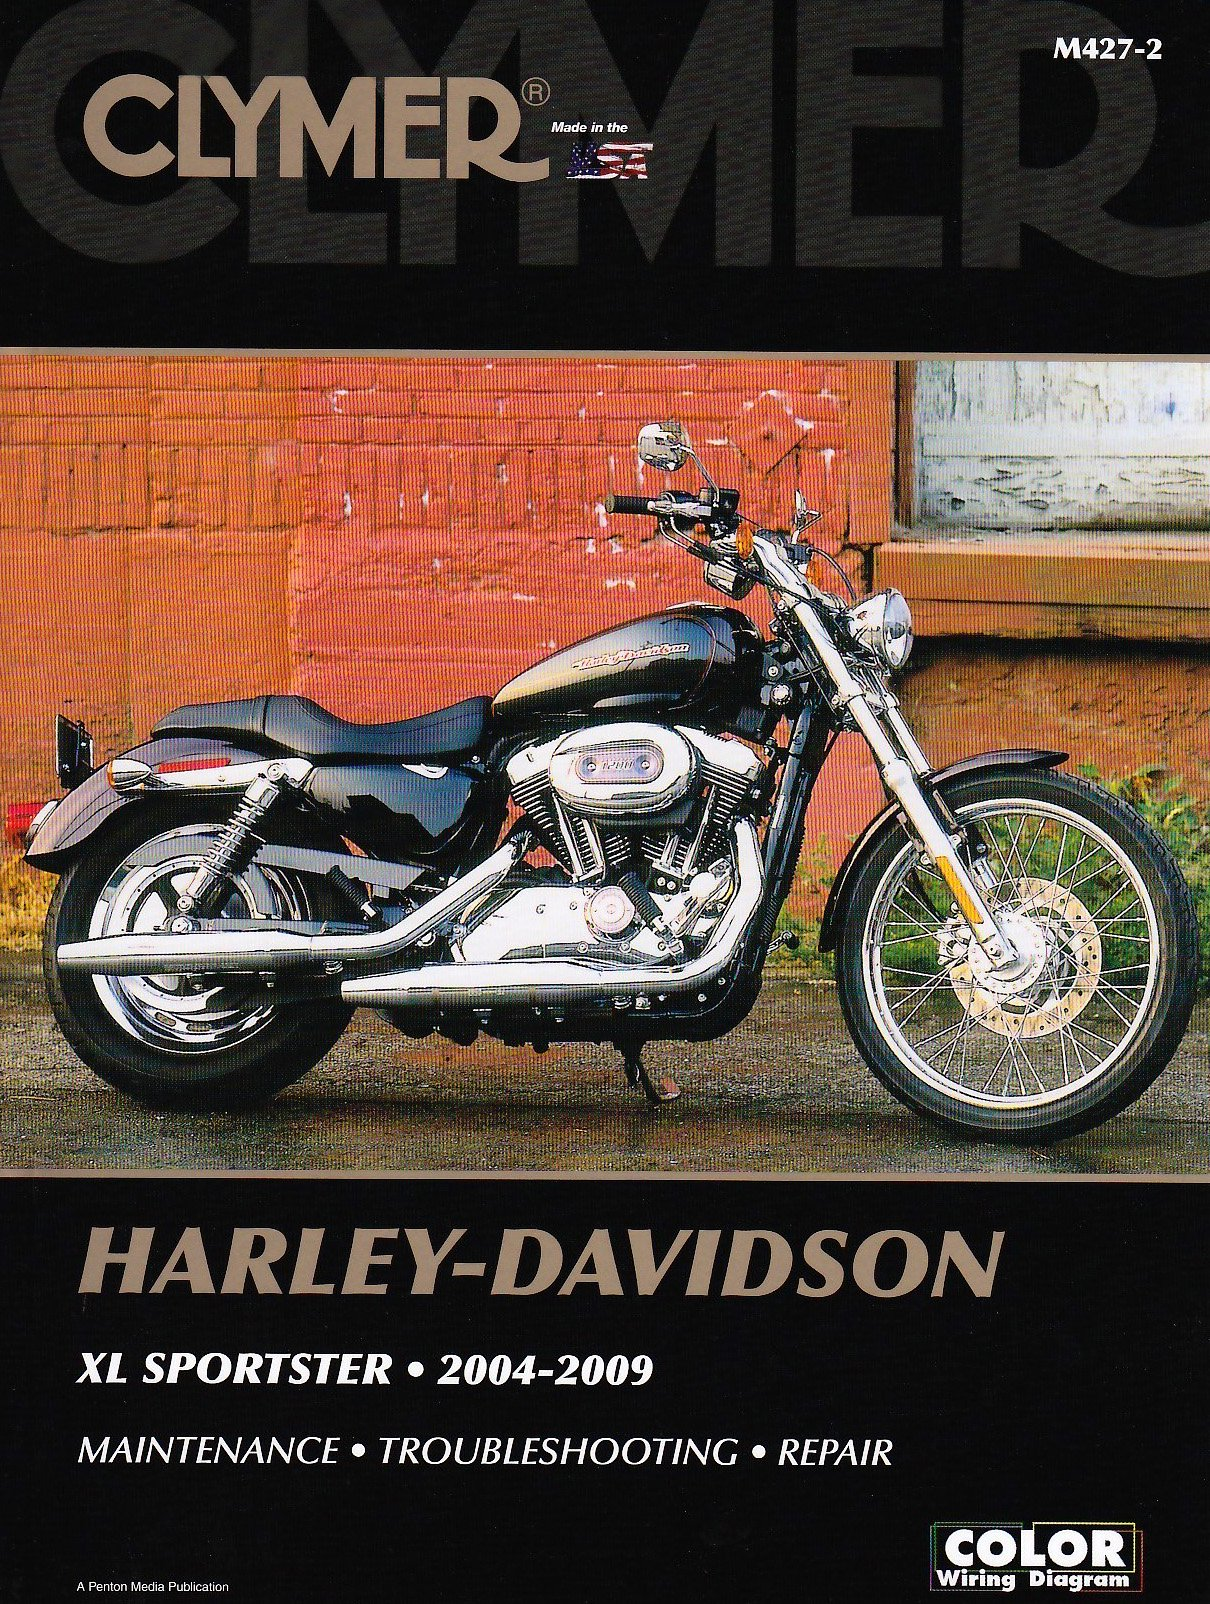 04 Harley Sportster Wiring Diagram Library 1980 Davidson Xlh 1000 Clymer Xl 2004 2009 Motorcycle Repair Mike